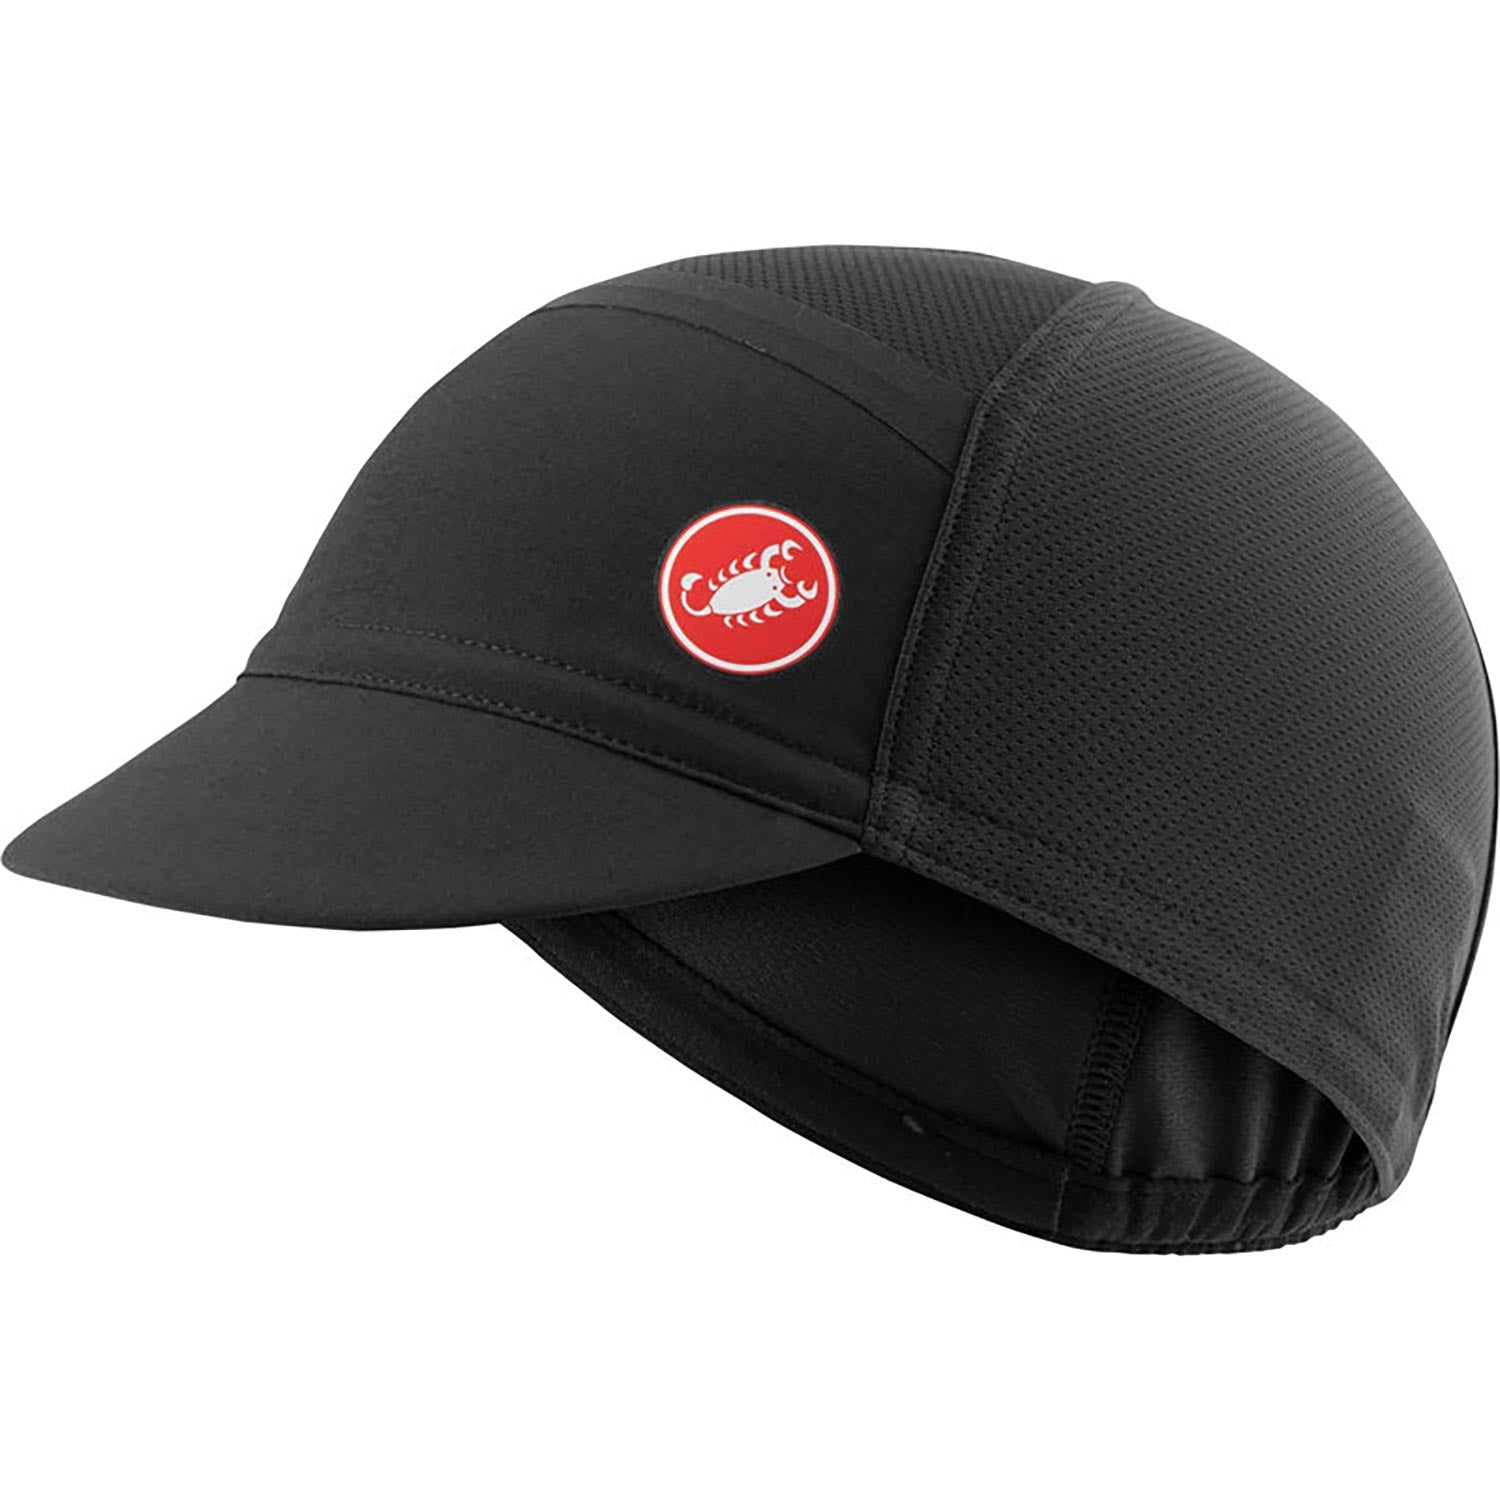 Castelli-Castelli Ombra Cycling Cap-Black-UNI-CS210340108-saddleback-elite-performance-cycling